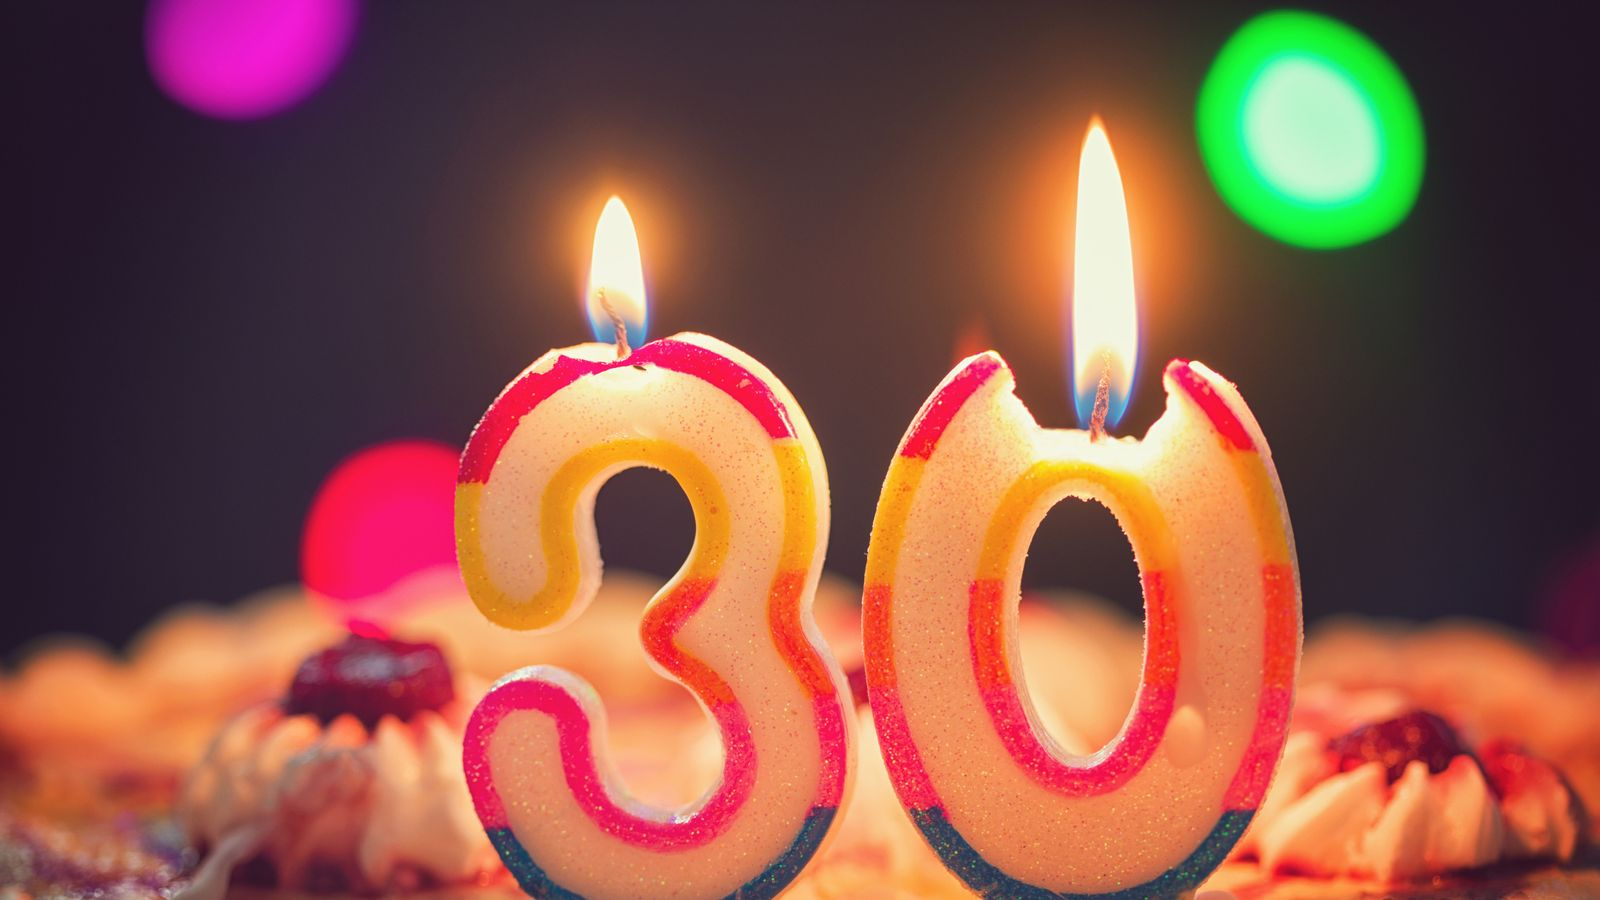 30 Today: Happy Birthday To The World Wide Web